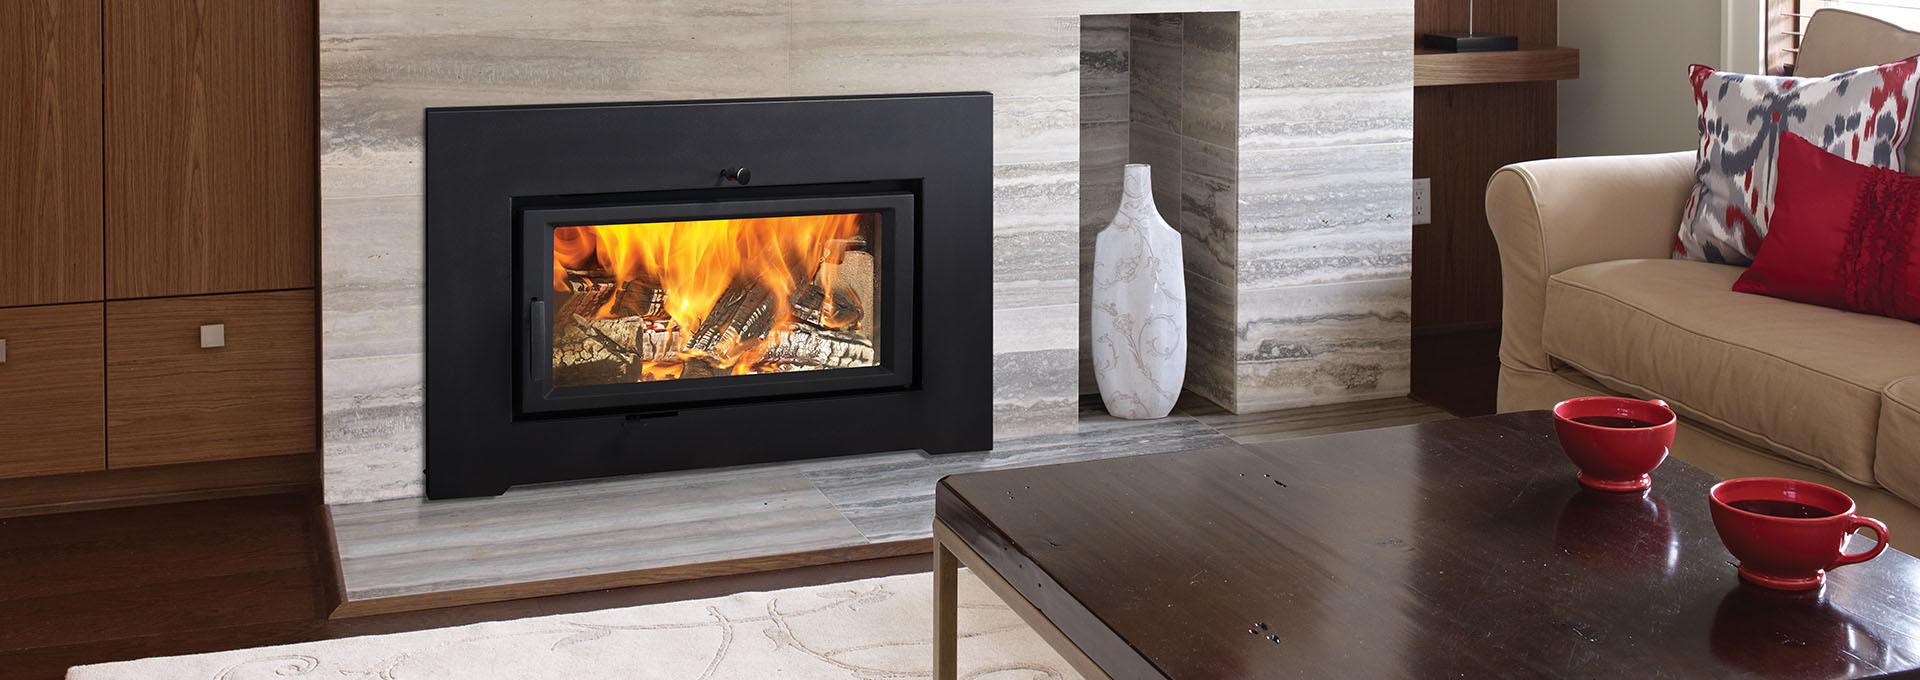 Electric Fireplace Insert with Heater Best Of Wood Inserts Epa Certified